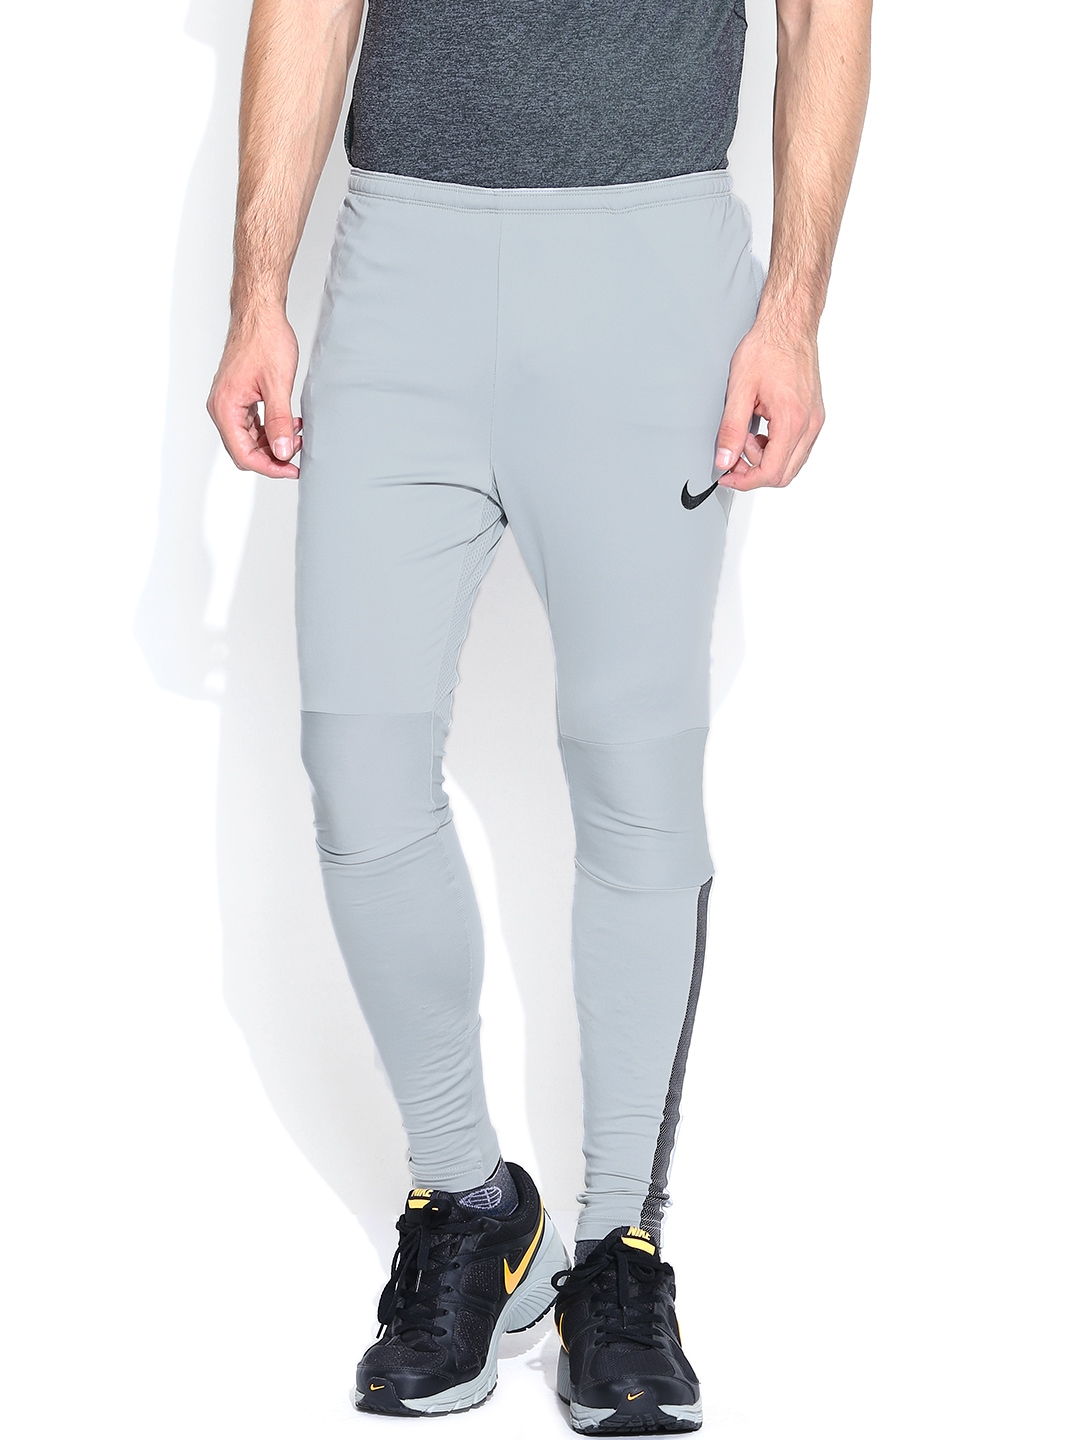 Simple Home Clothing Men Clothing Track Pants Nike Track Pants